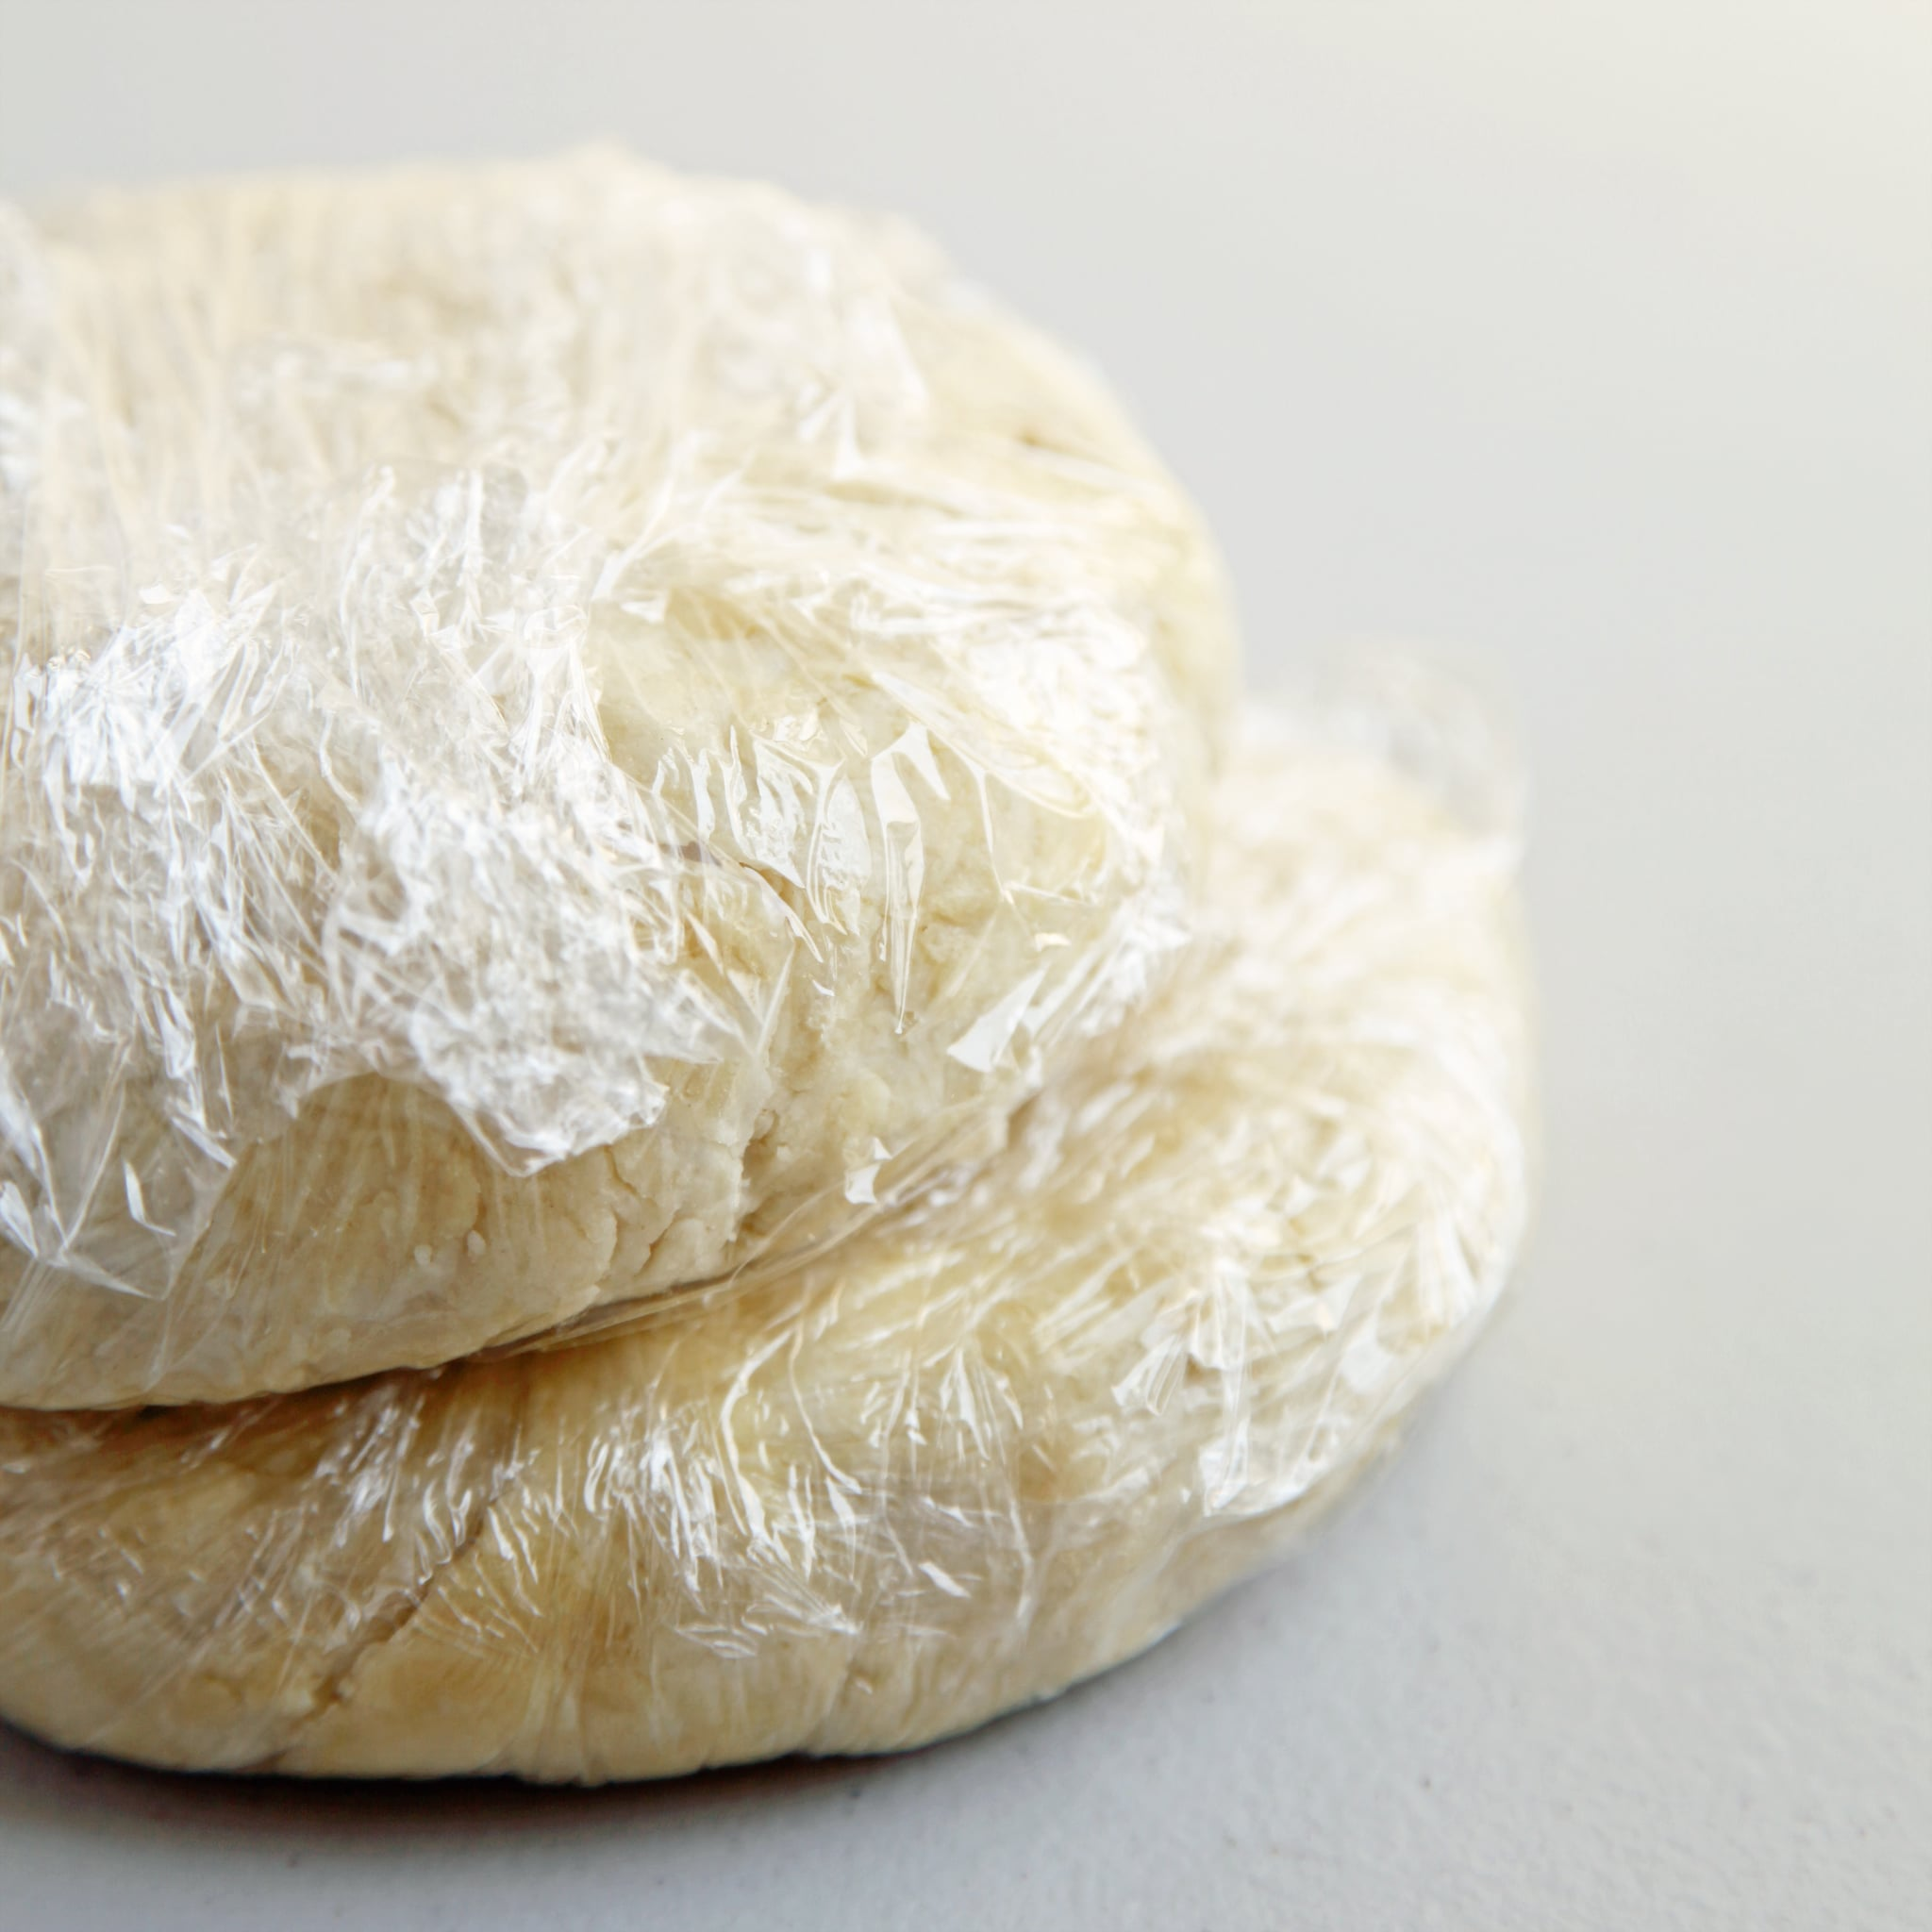 Wrap and Chill the Dough